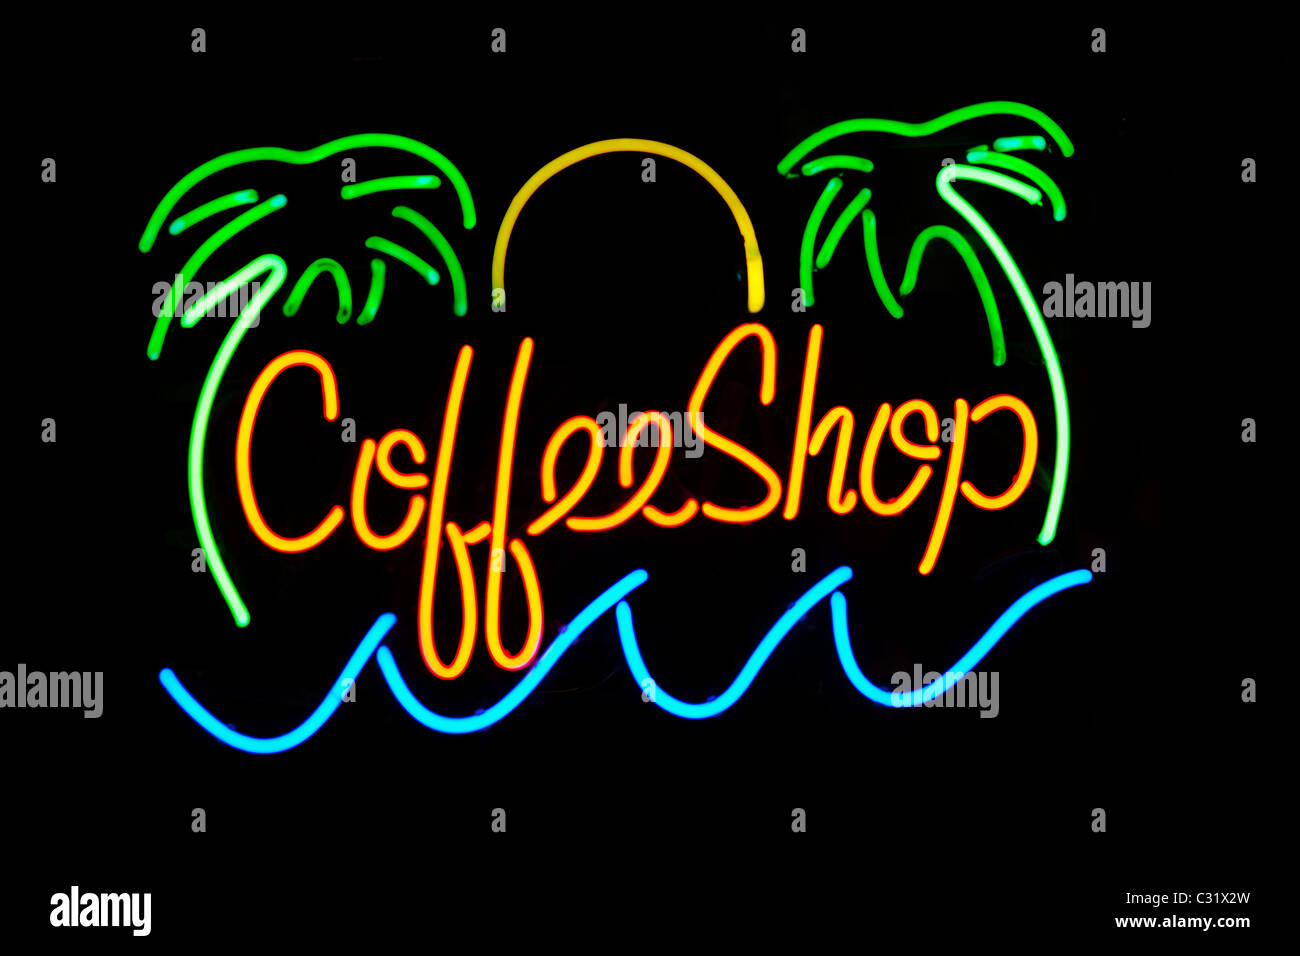 Amsterdam Dutch coffeeshop coffee shop cannabis marijuana marihuana cafe neon sign. Holland; The Netherlands. - Stock Image